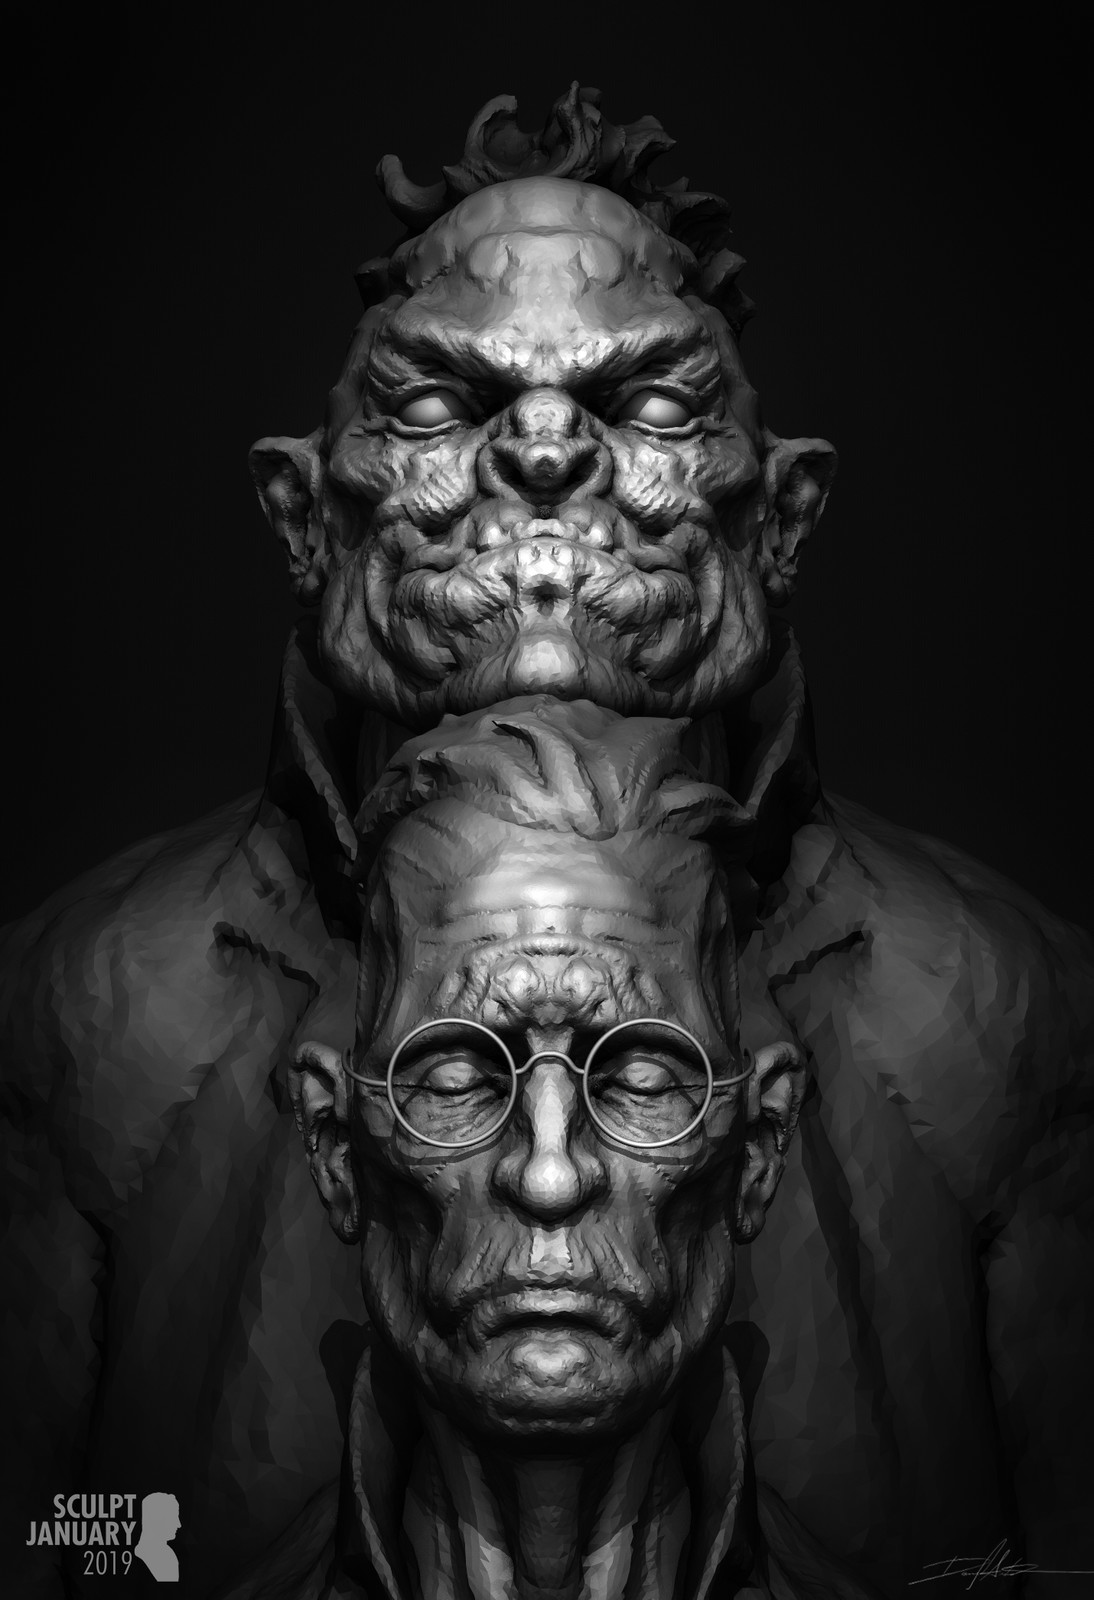 SCULPT JANUARY Day 08 - Jekyll and Hyde